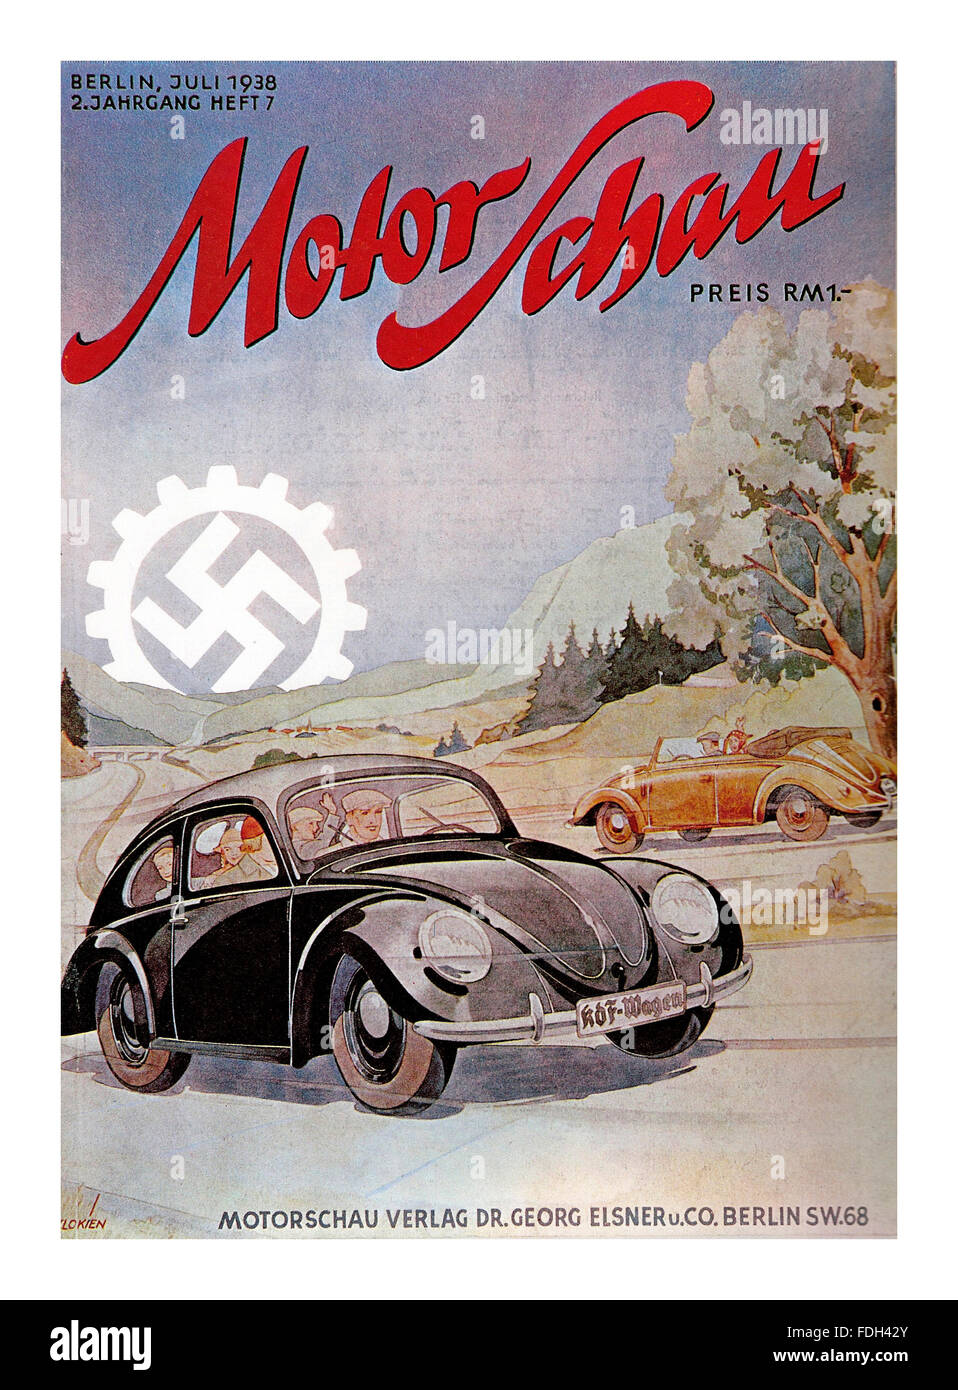 VOLKSWAGEN SWASTIKA HITLER Motor Show magazine cover Berlin Germany 1938 with Volkswagen cars and mechanised Swastika - Stock Image